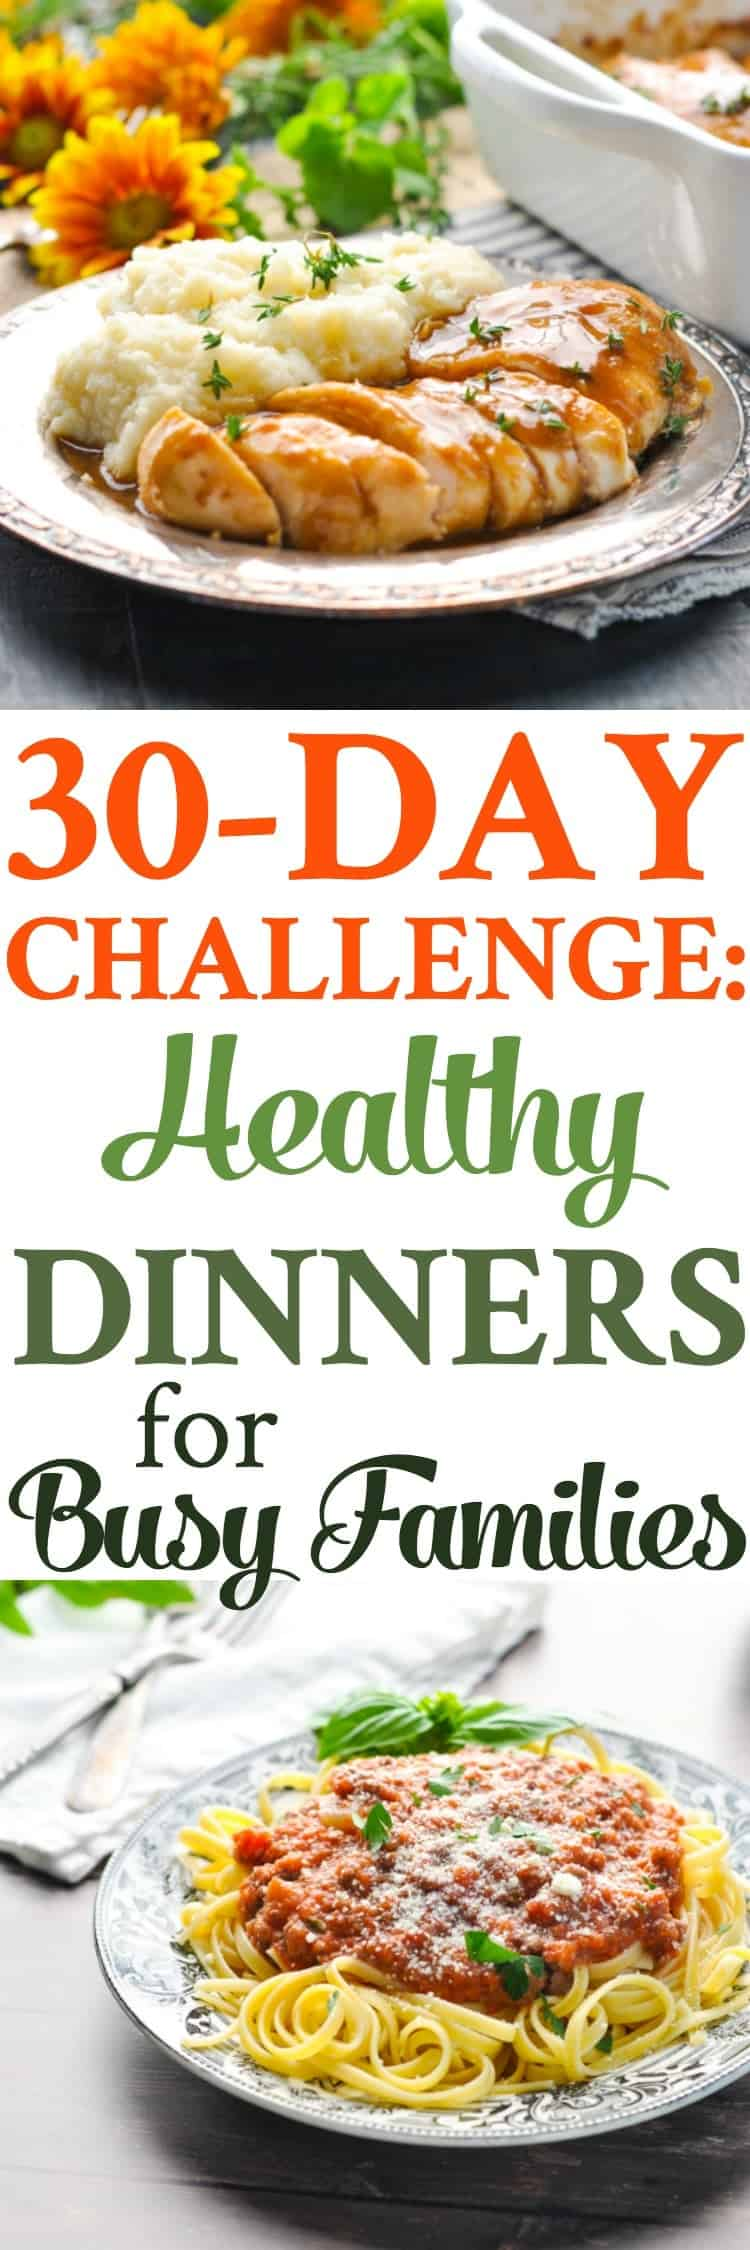 Try A 30 Day Challenge With Healthy Dinner Ideas For Busy Families Easy